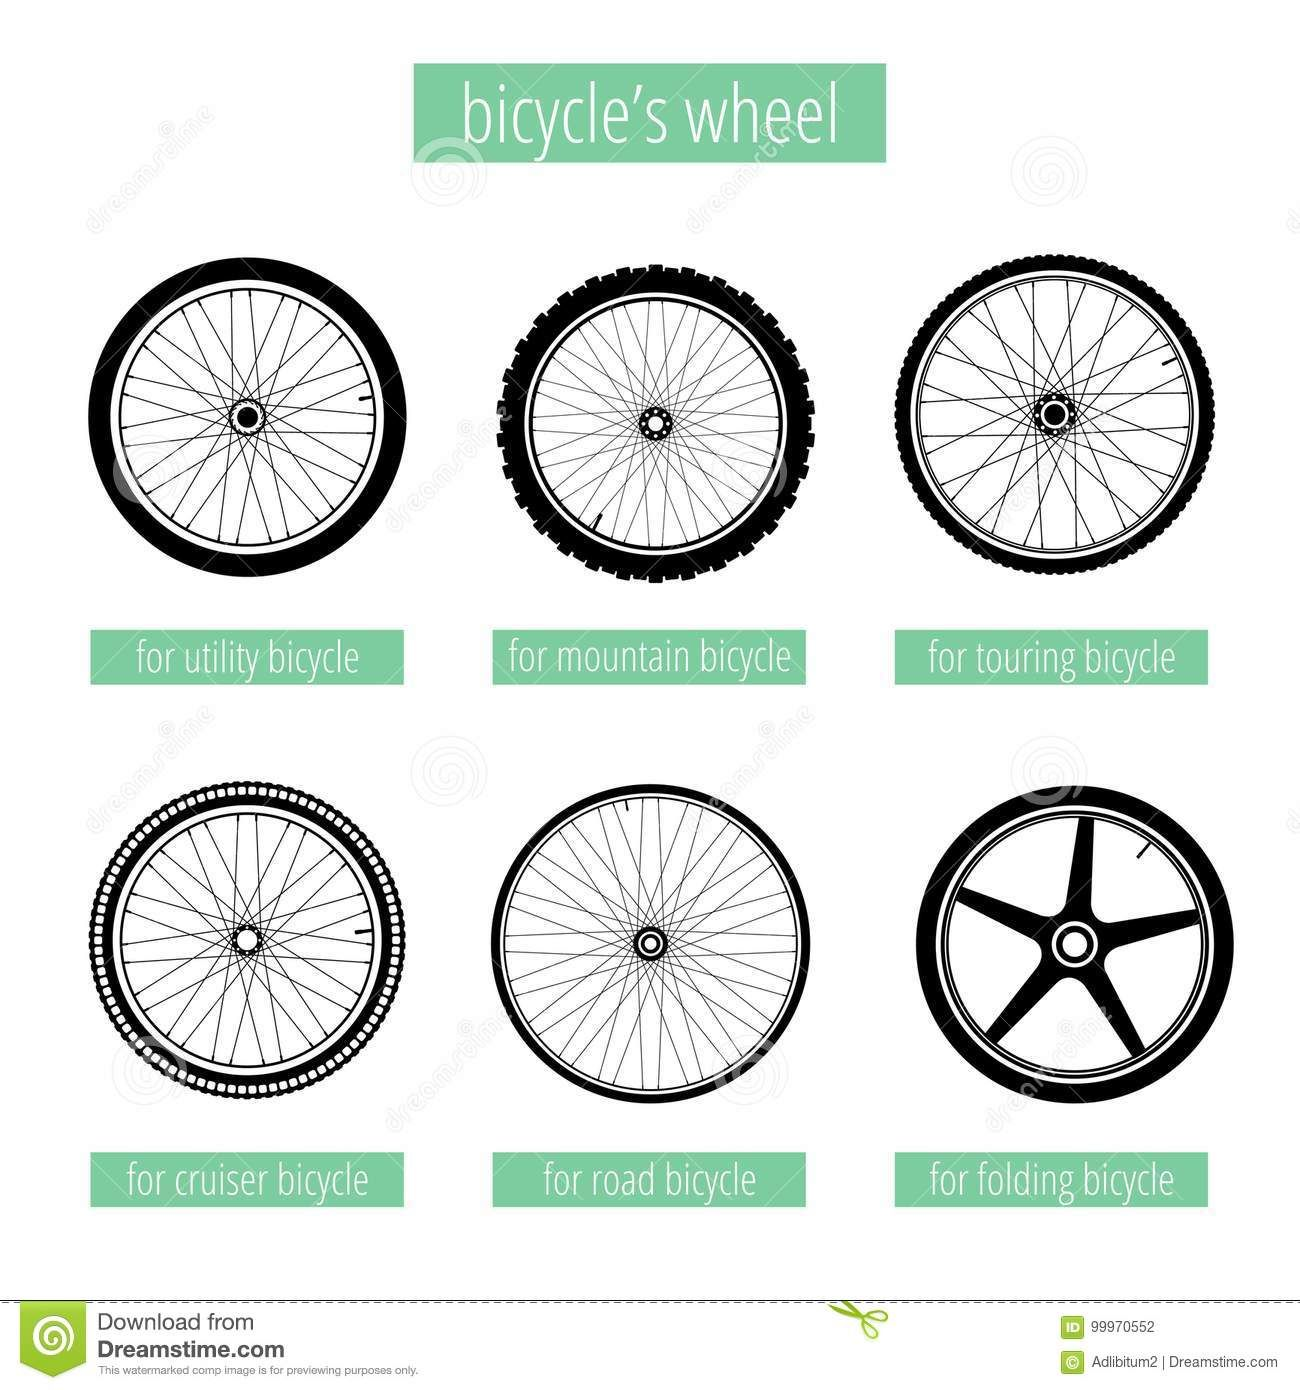 Image Result For Types Bicycle Wheels